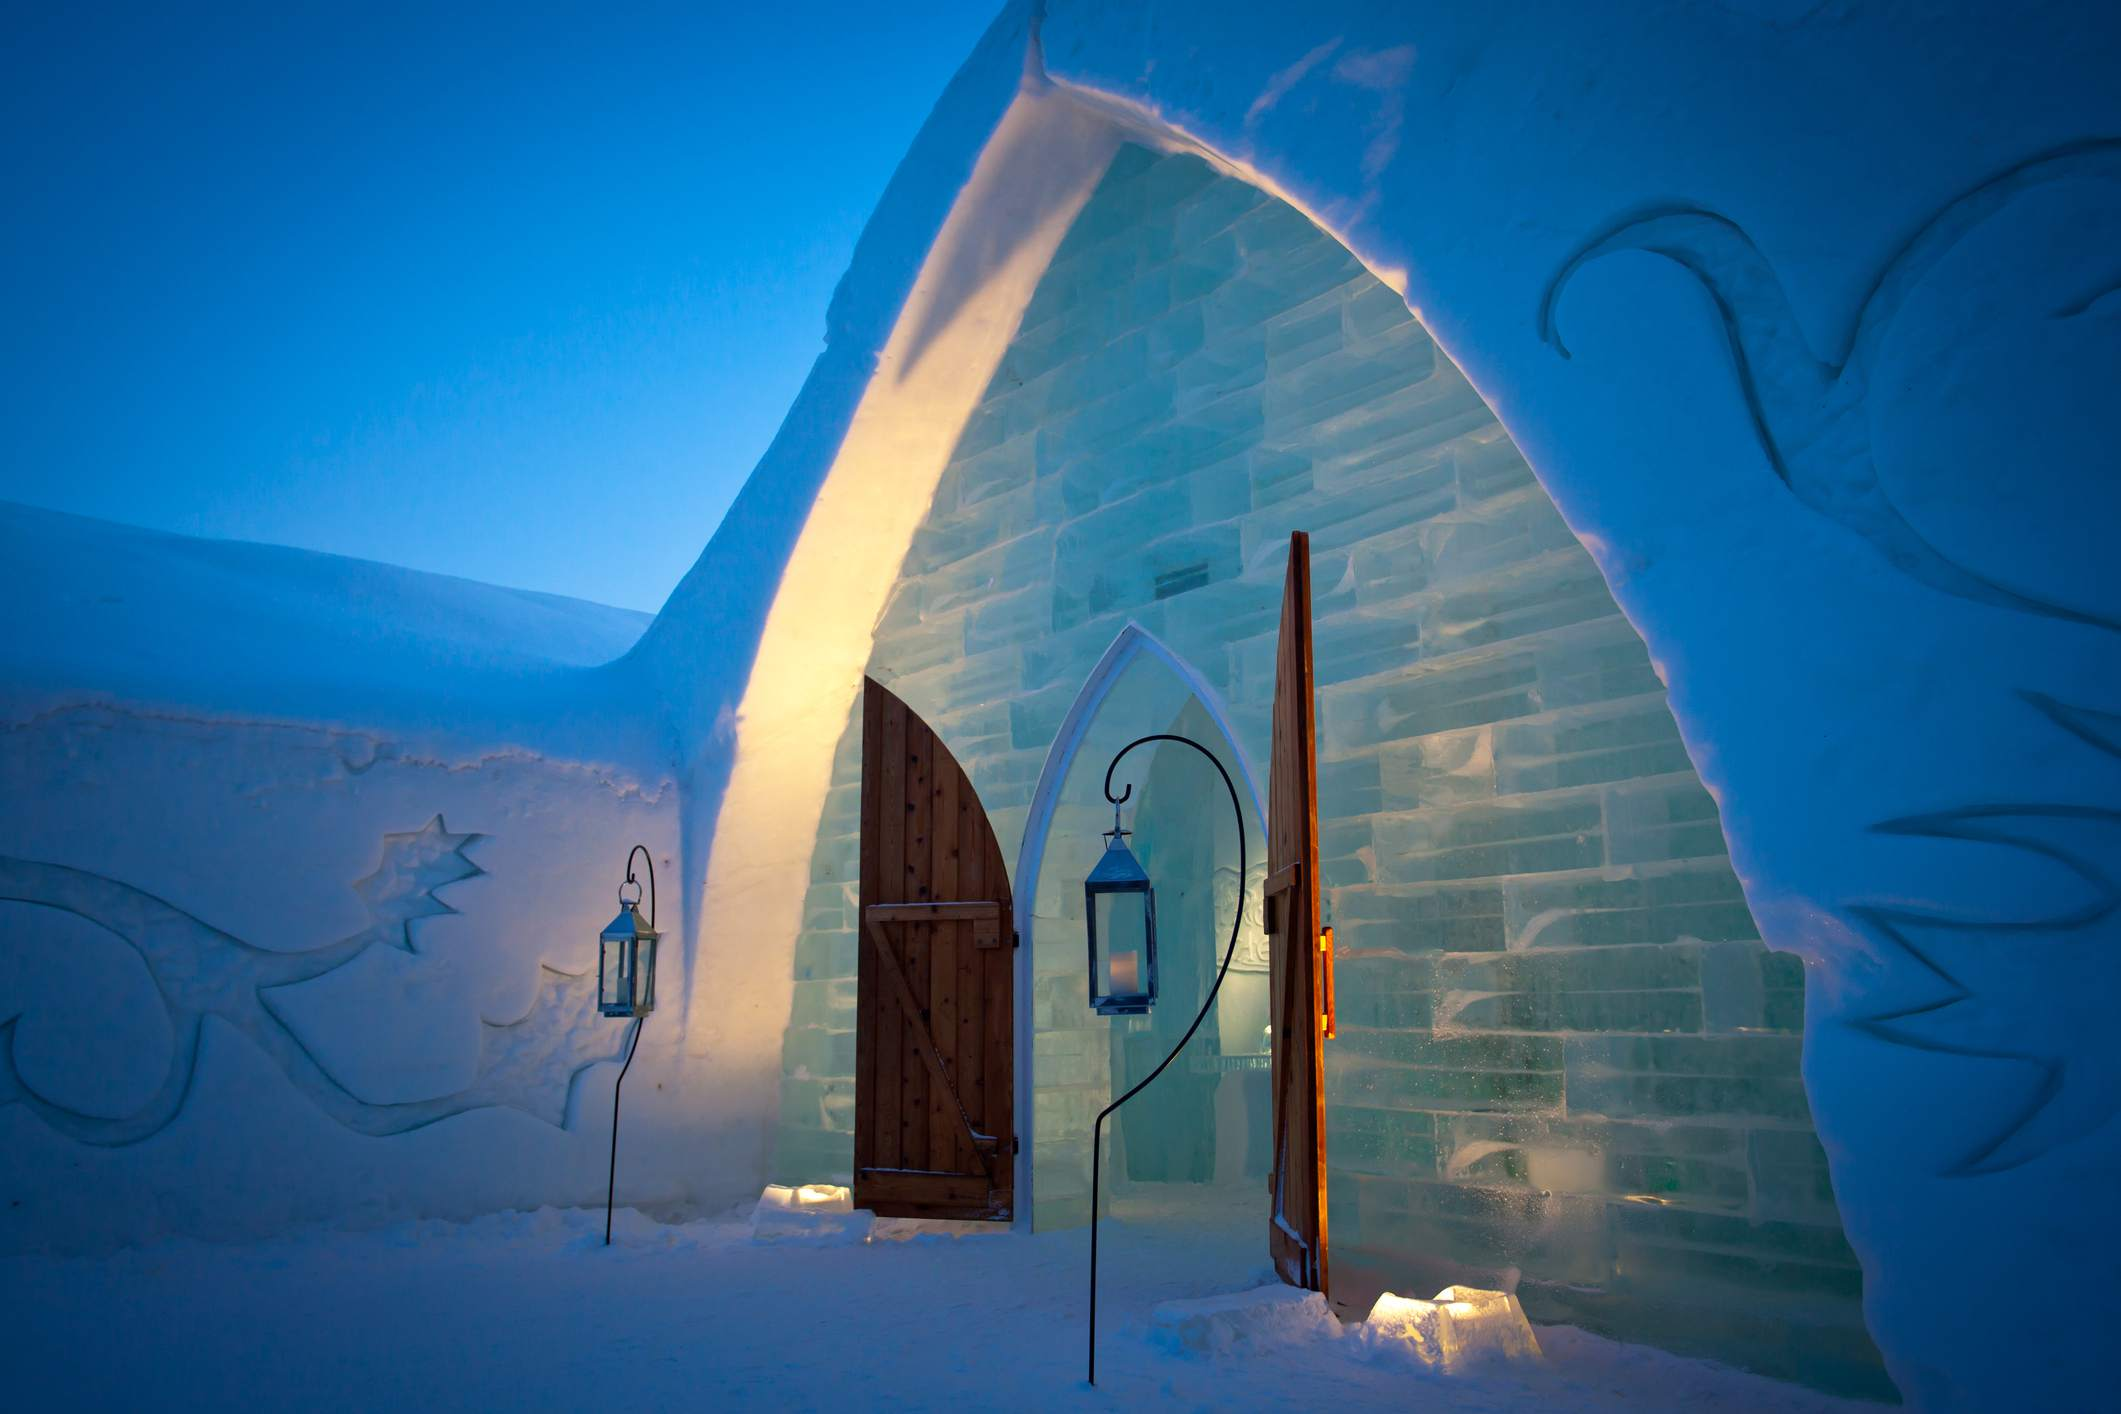 Quebec City Ice Hotel (Hotel de Glace) at Dusk, Canada